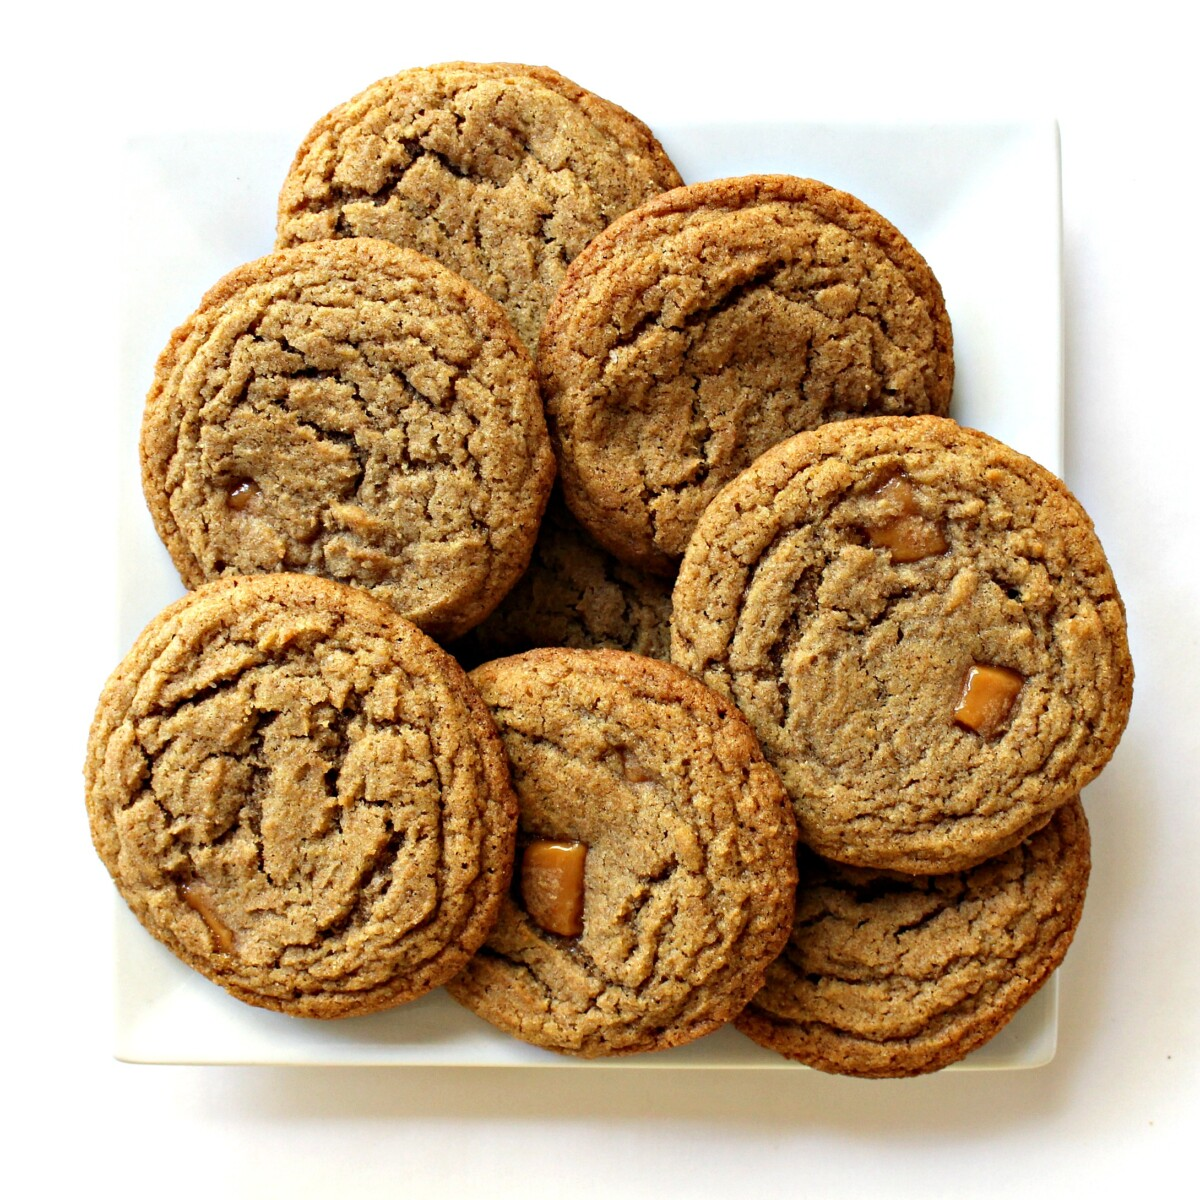 Thin, golden brown cookies with crinkled tops and caramel chunks on a square white plate.